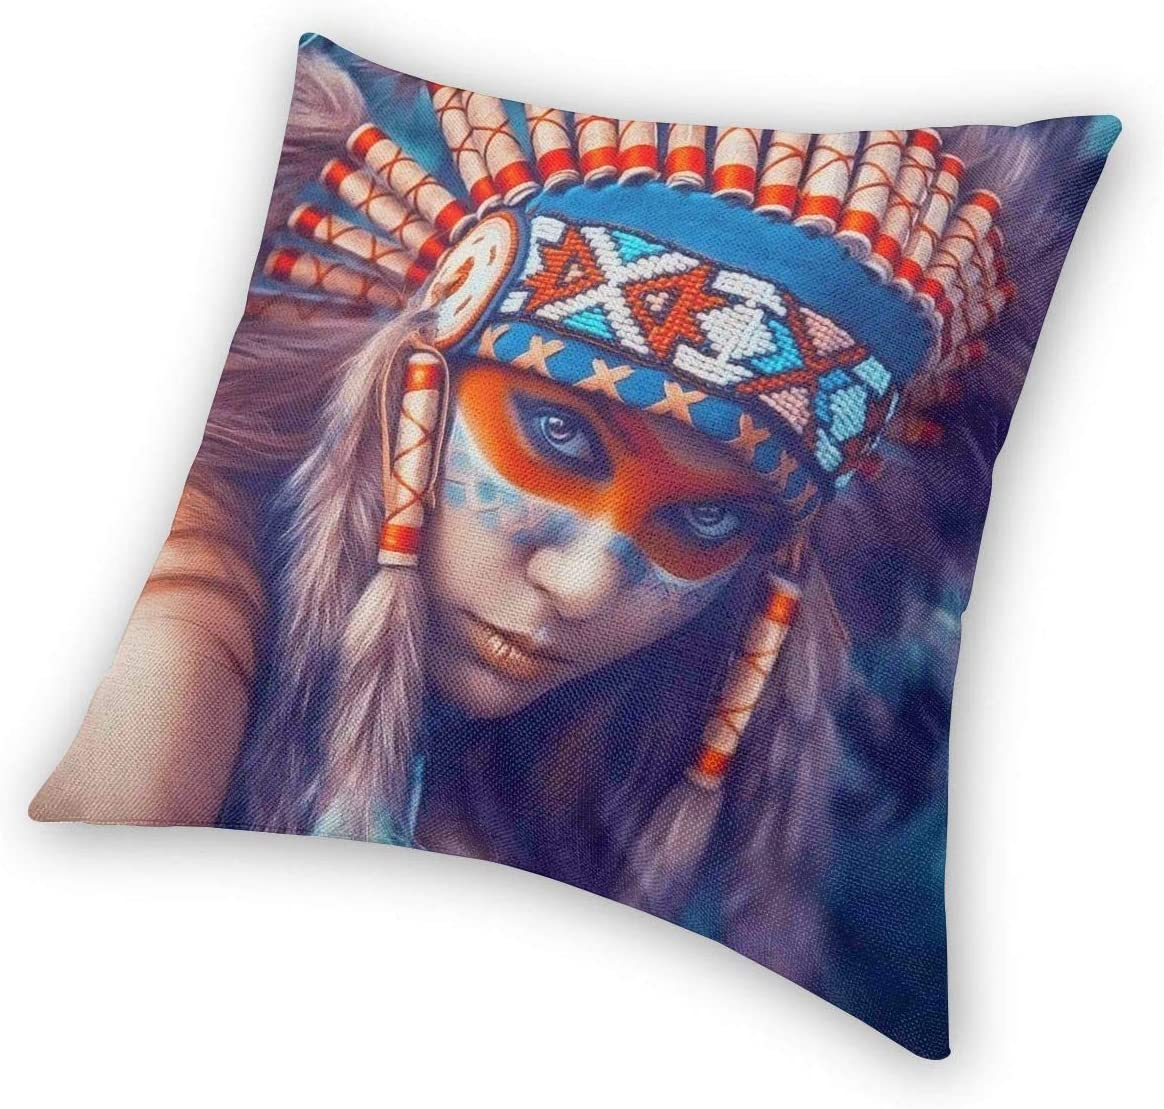 WAZHIJIA Decorative Throw Pillow Covers 18 X 18 Inch,Cotton Linen Cushion Cover Square Pillow Cases for Car Sofa Home Decor Native American Girl